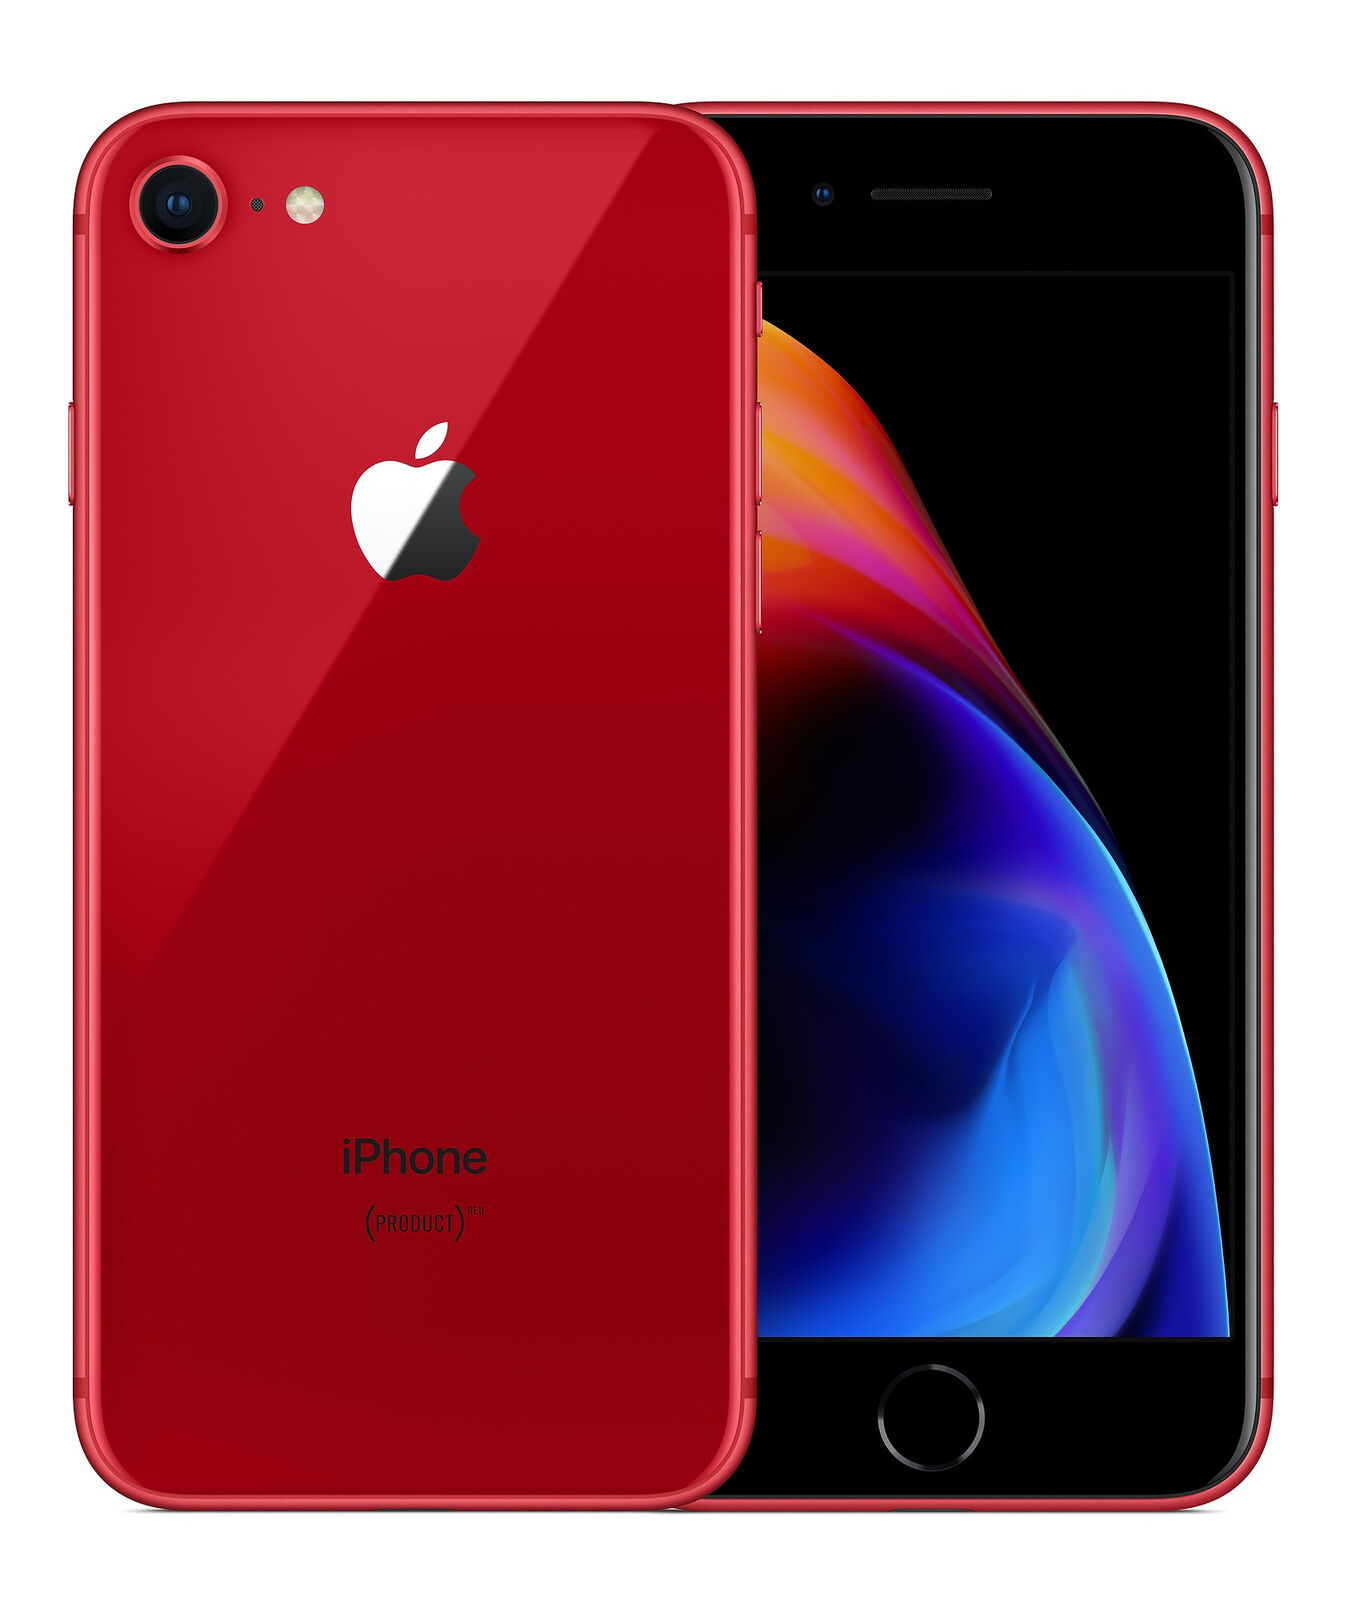 Apple iPhone 8 Plus A1897 - 64GB - Red (AT&T) Smartphone